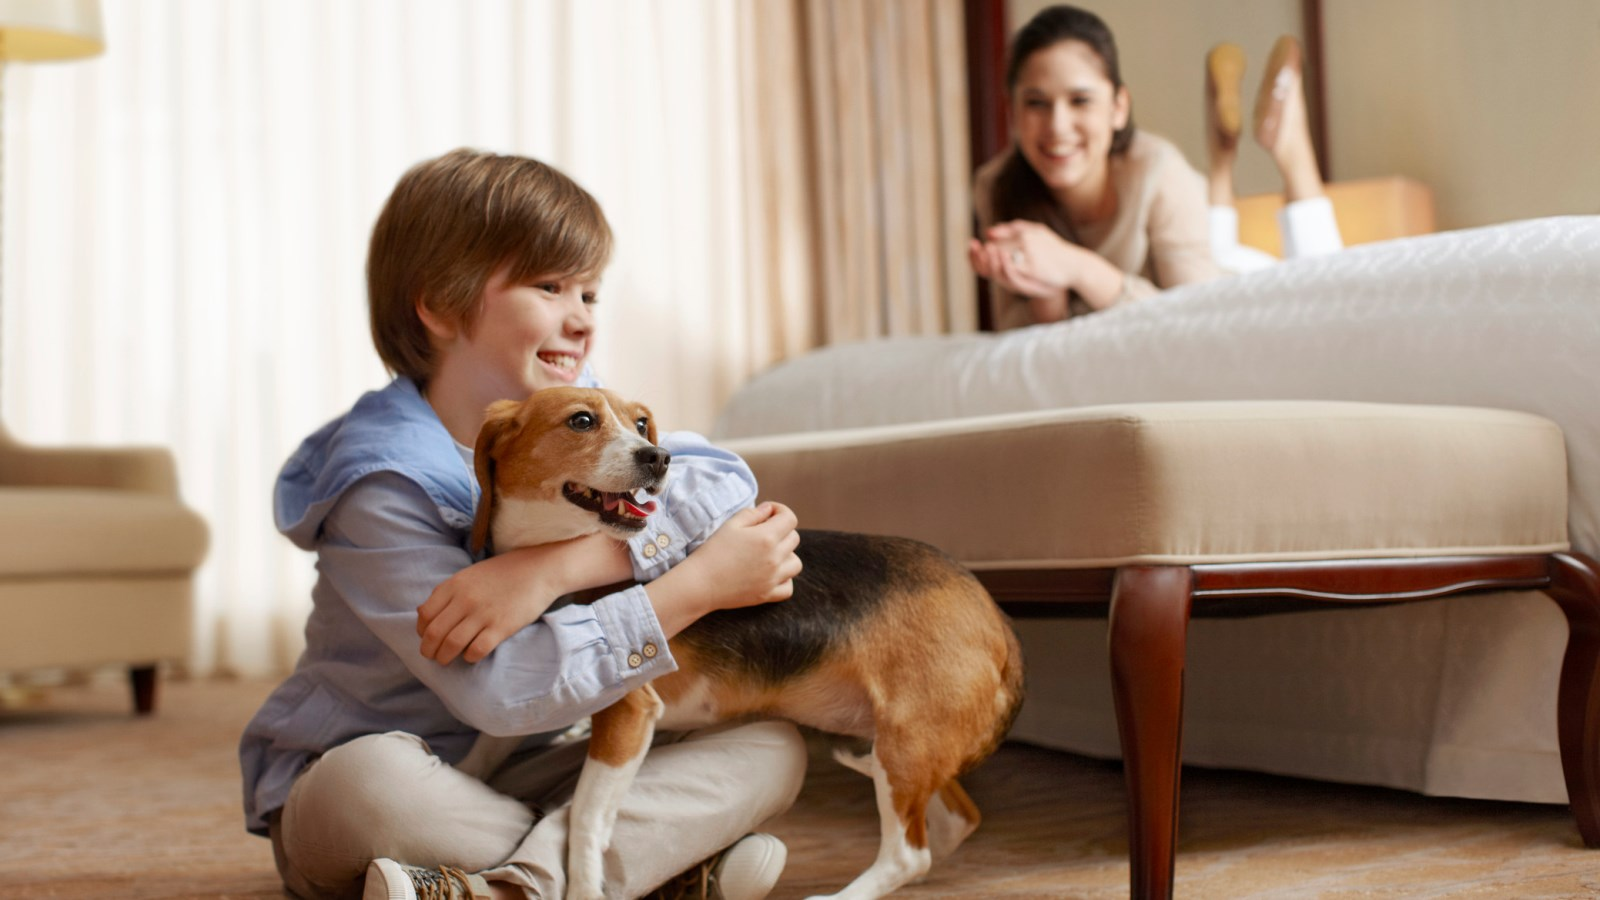 Pet friendly hotels in Virginia Beach